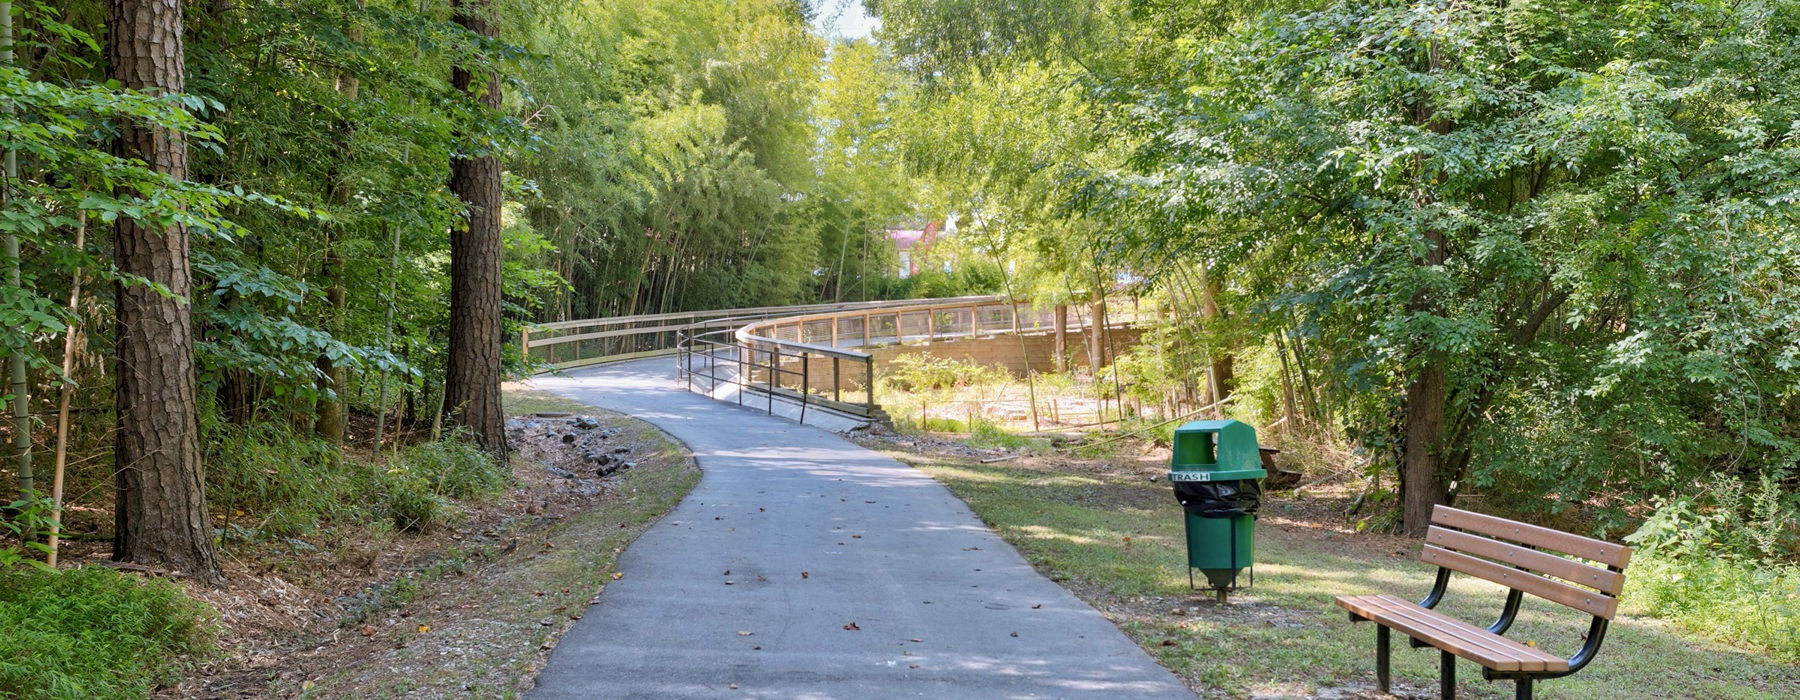 wood lined, paved walking trail with park bench and trash bin